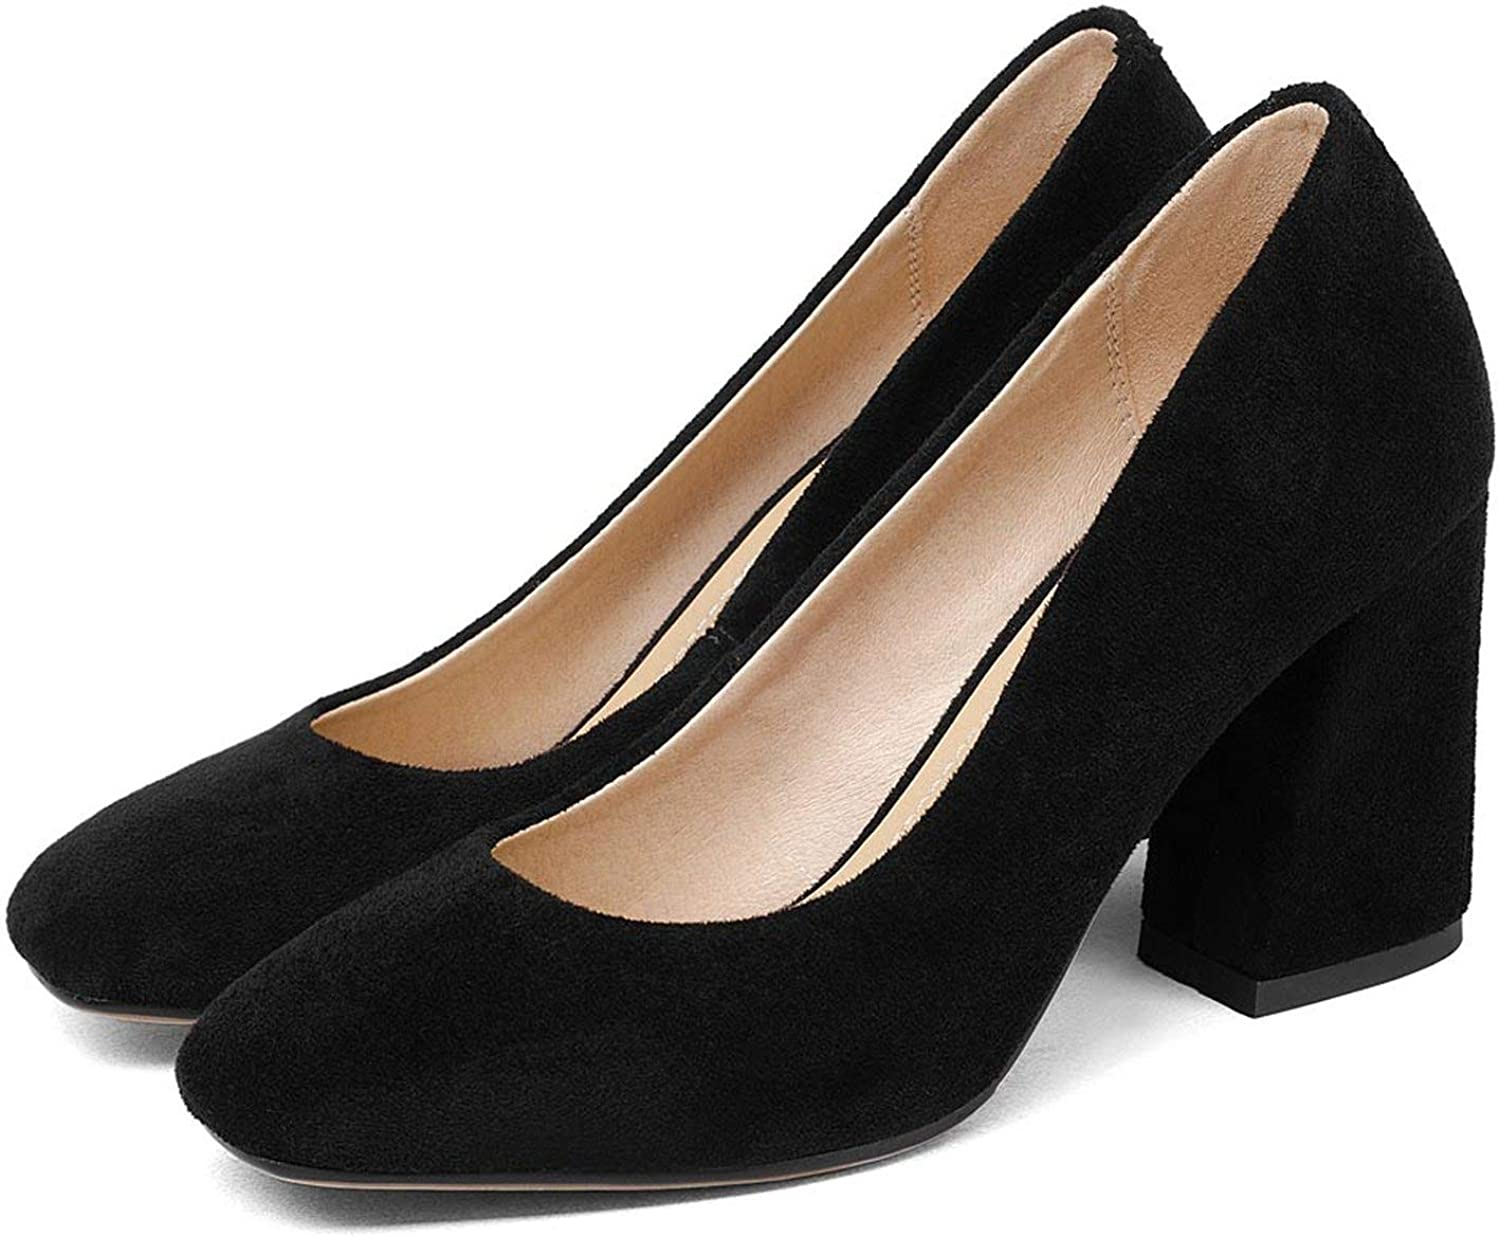 Get-in Women Pumps Thick High Heels Flock Nude colors Black Red Sheepskin shoes Woman